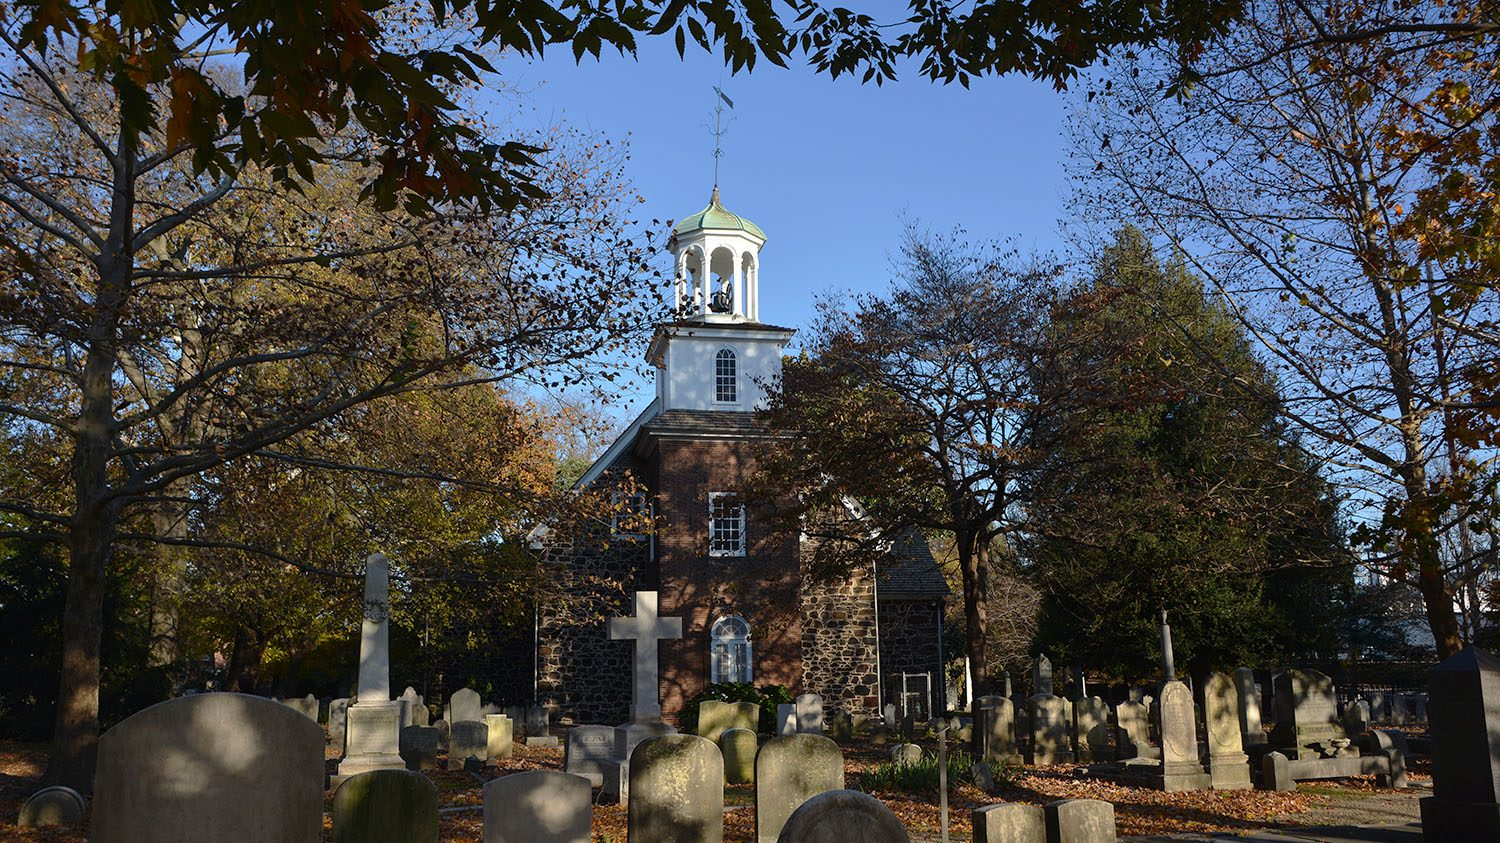 A photo of Old Swedes Church and graveyard in the fall.